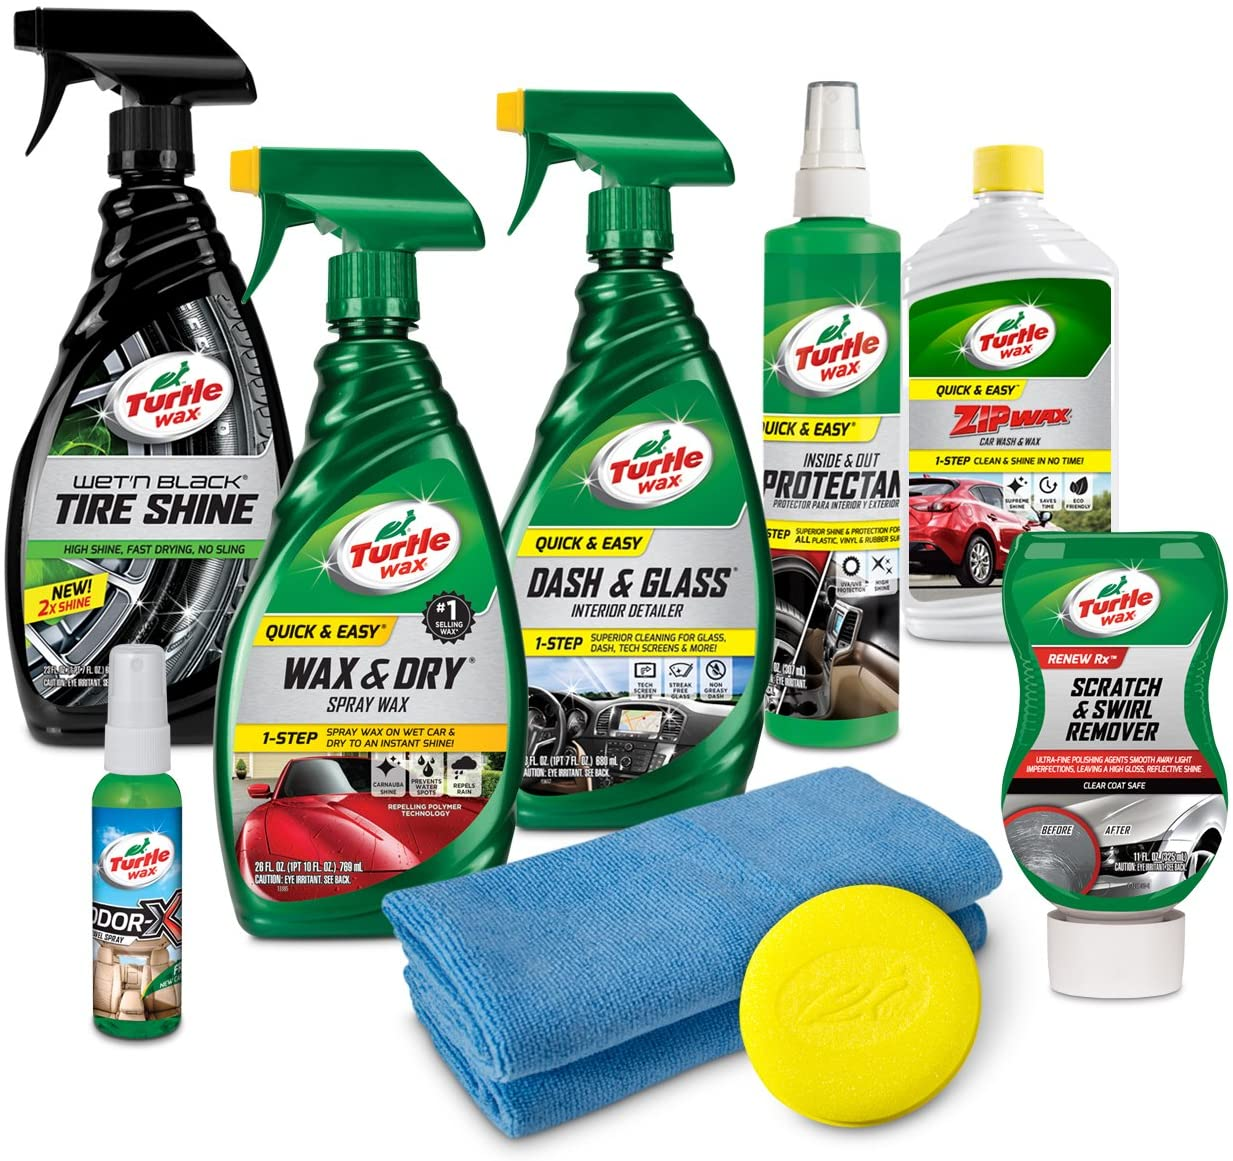 Minneapolis Mall Turtle Wax Shipping included 50754 Ultimate Car Kit Care